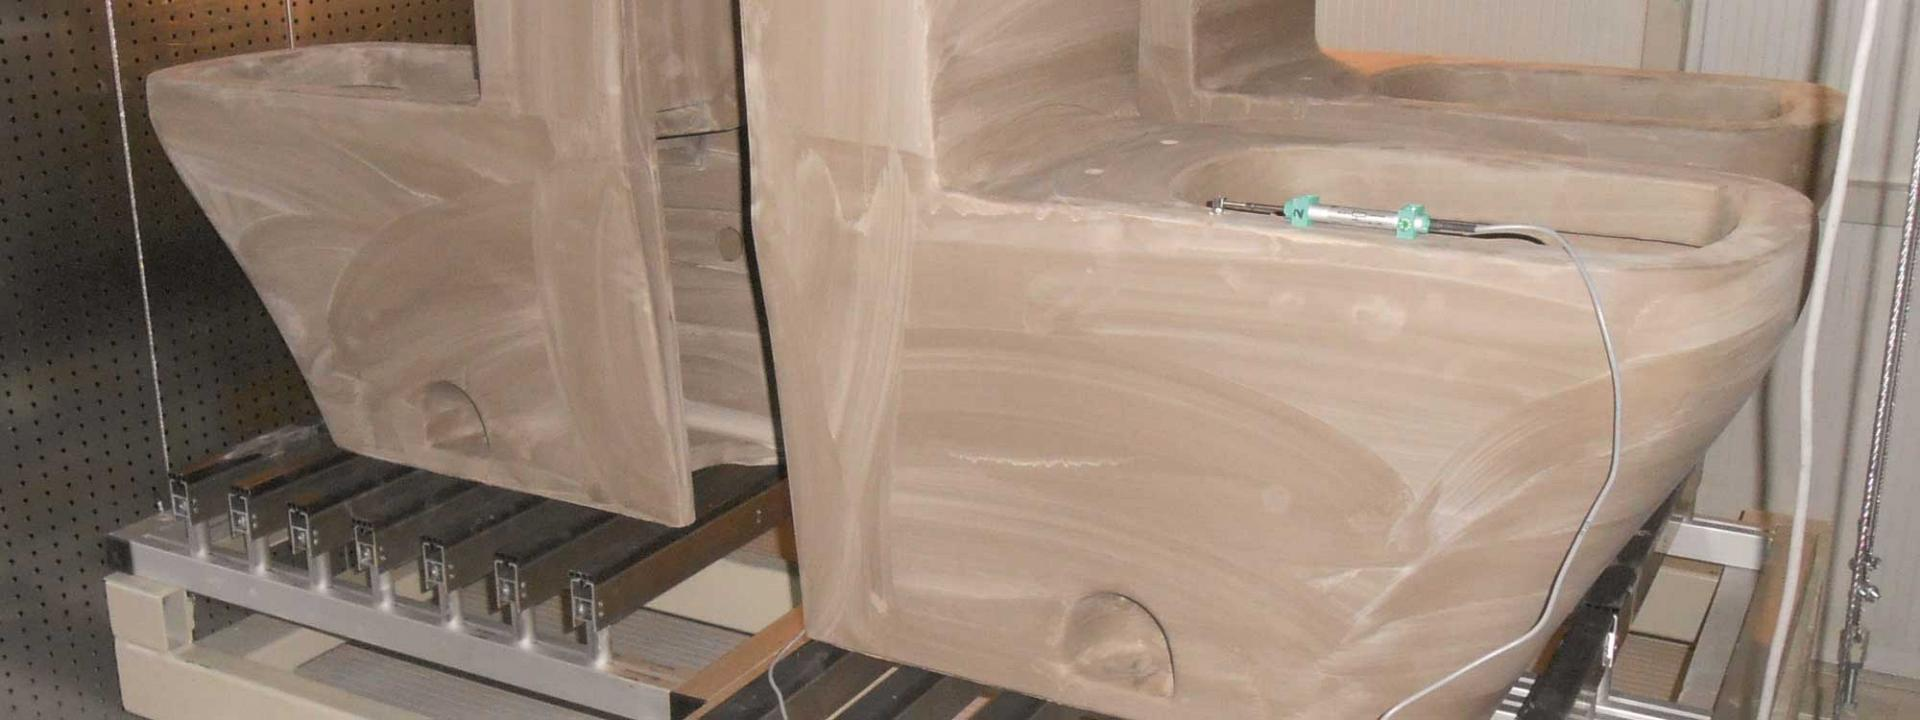 Thanks to the acquired know-how, Marcheluzzo Ceramics is today capable to offer solutions in various industrial fields